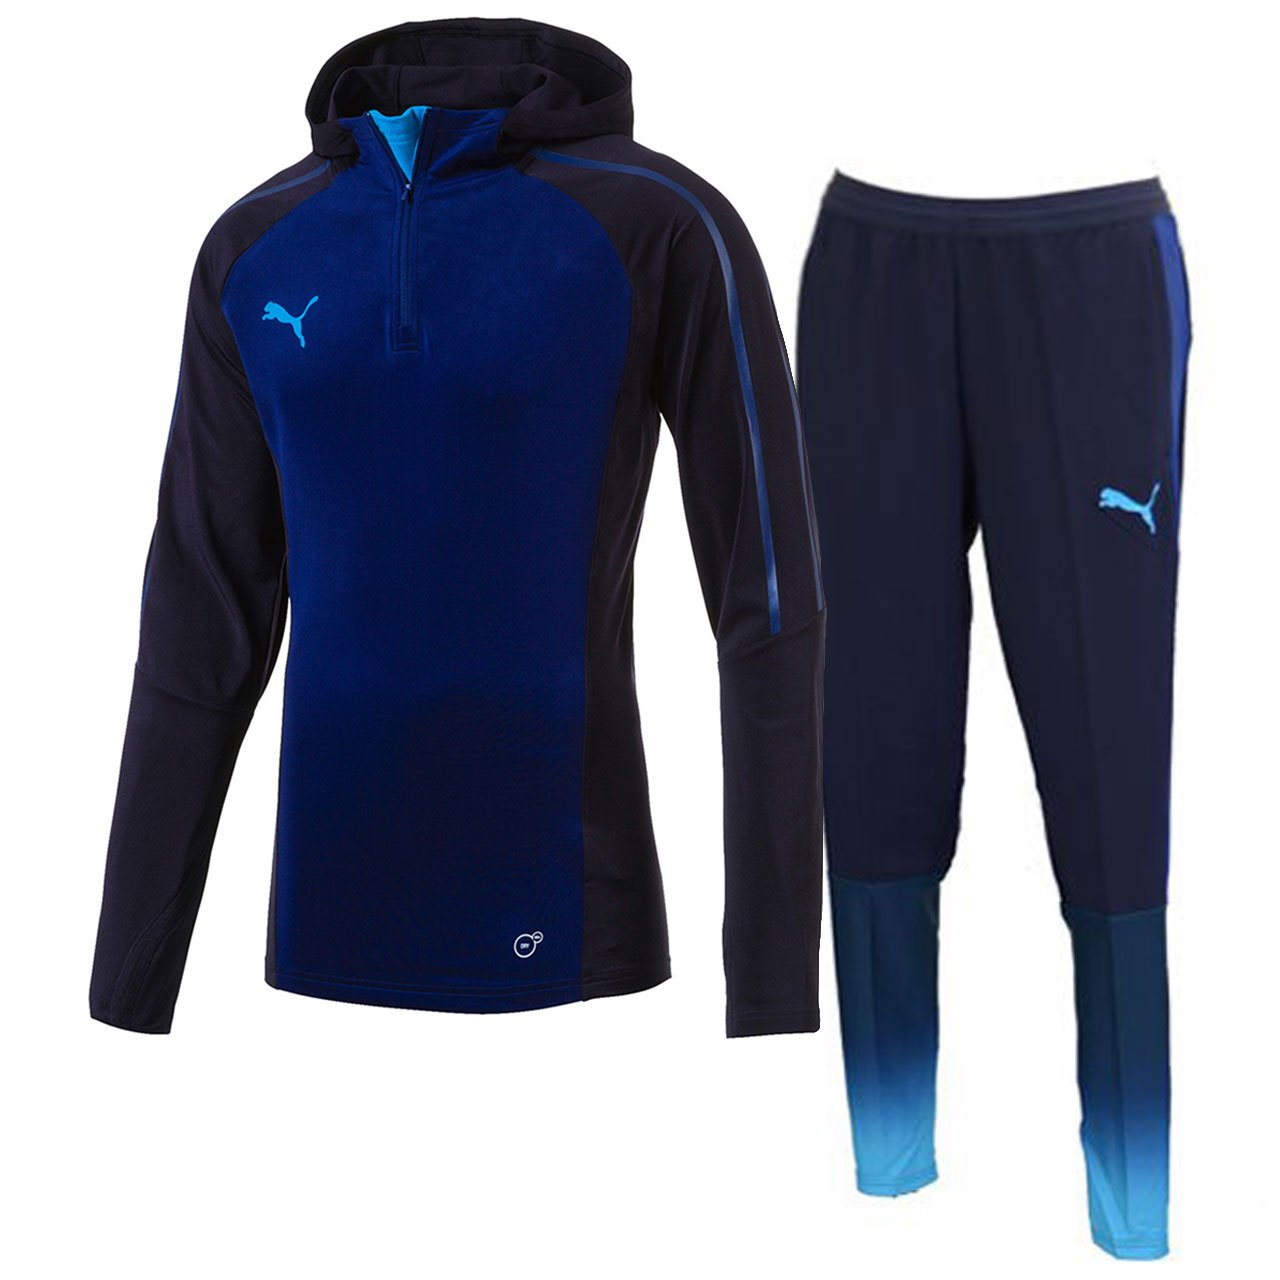 Sporting Goods Fine Puma Evotrg Mens Running Jacket Blue